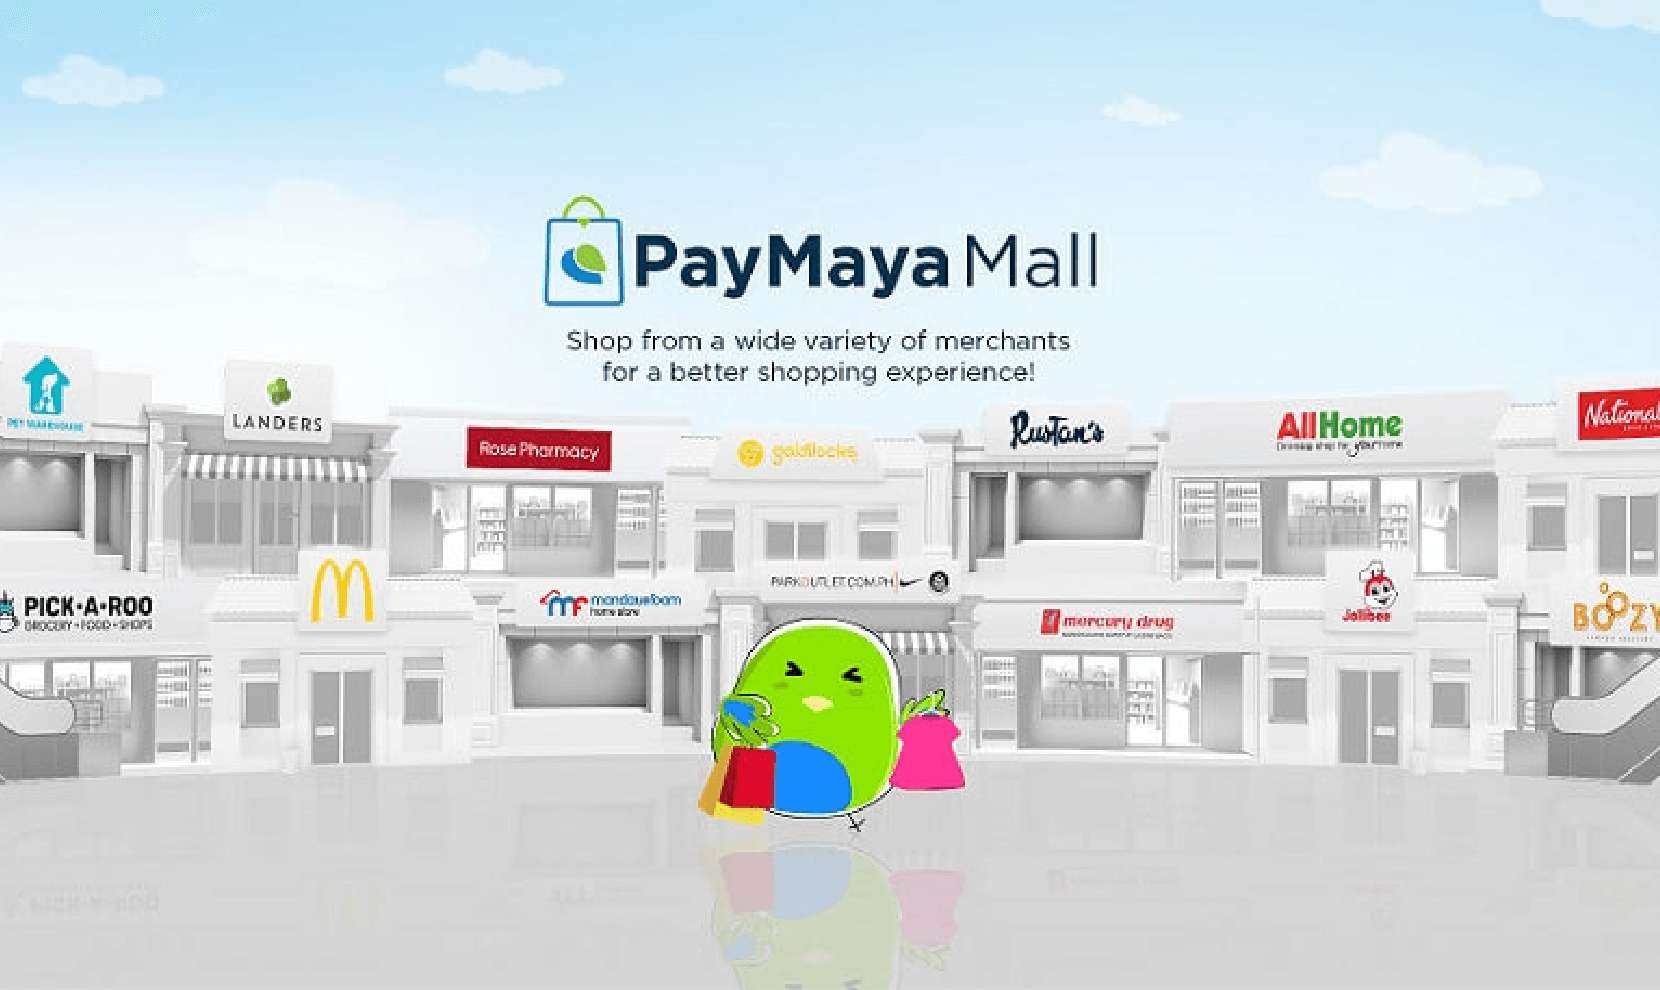 philippines-paymaya-launches-its-own-mall-style-shopping-site-paymaya-mall